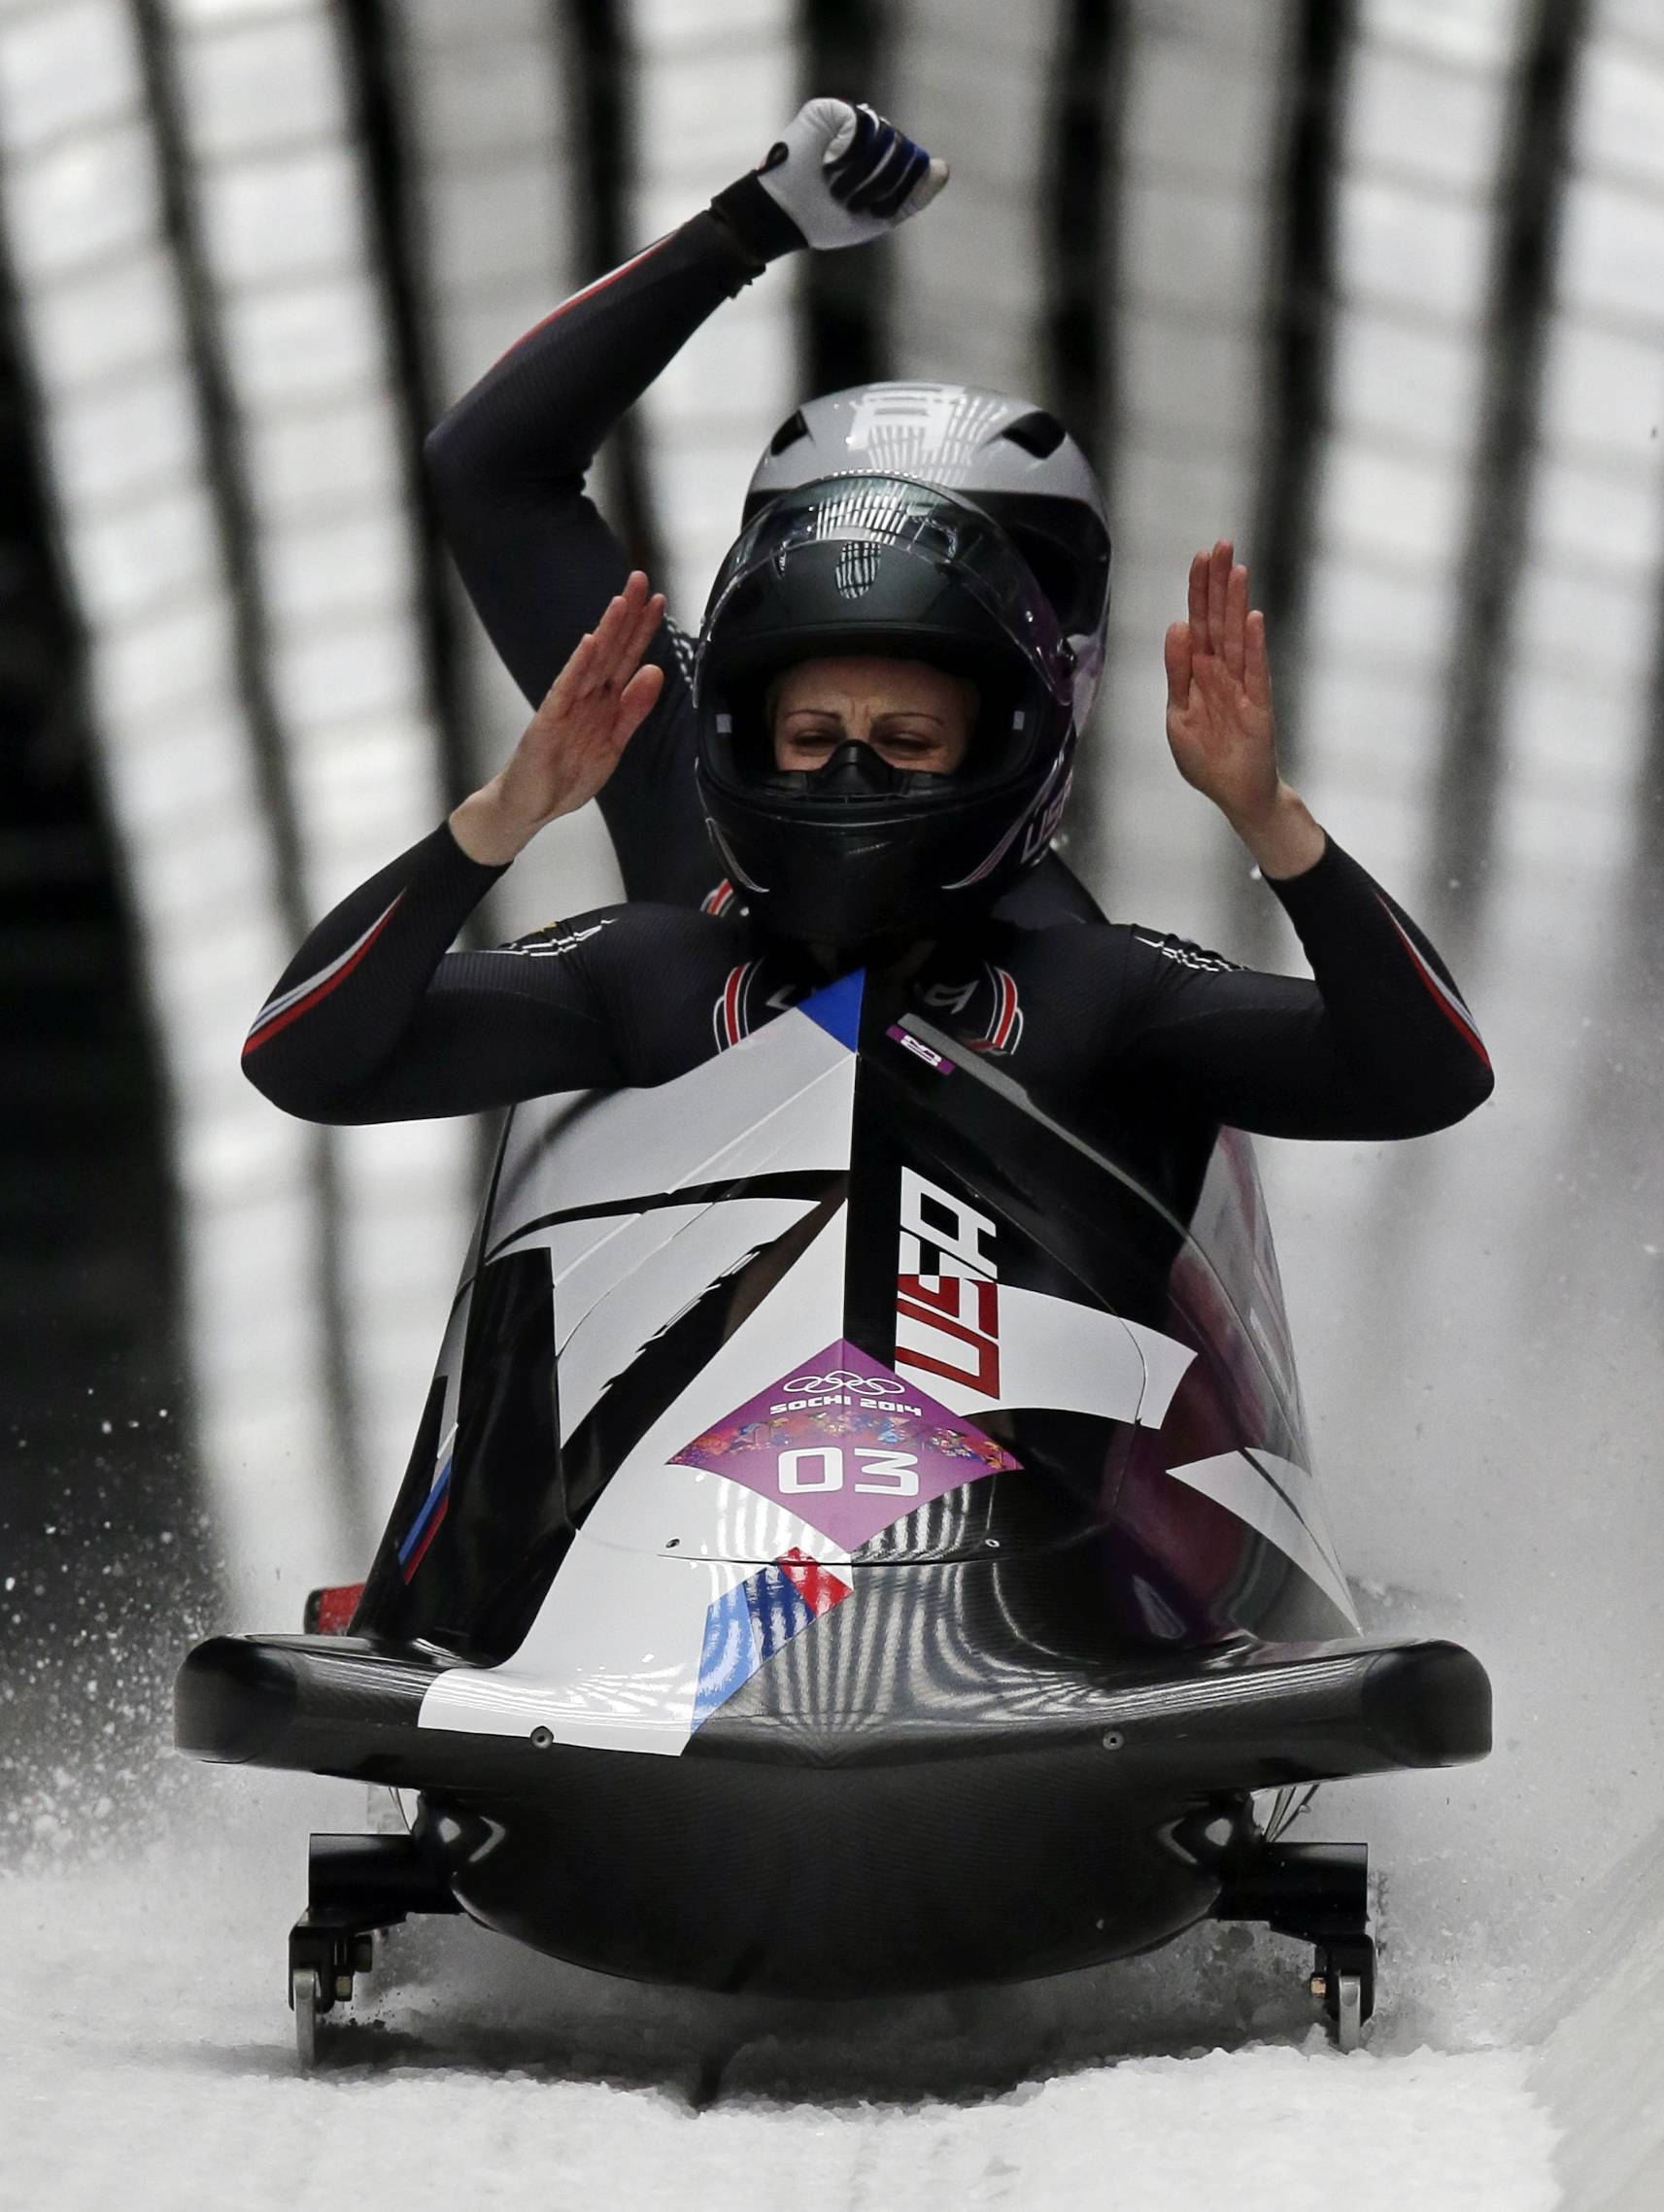 The team from the United States USA-2, piloted by Jamie Greubel with brakeman Aja Evans, cross into the finish area to win the bronze medal in the women's bobsled competition.